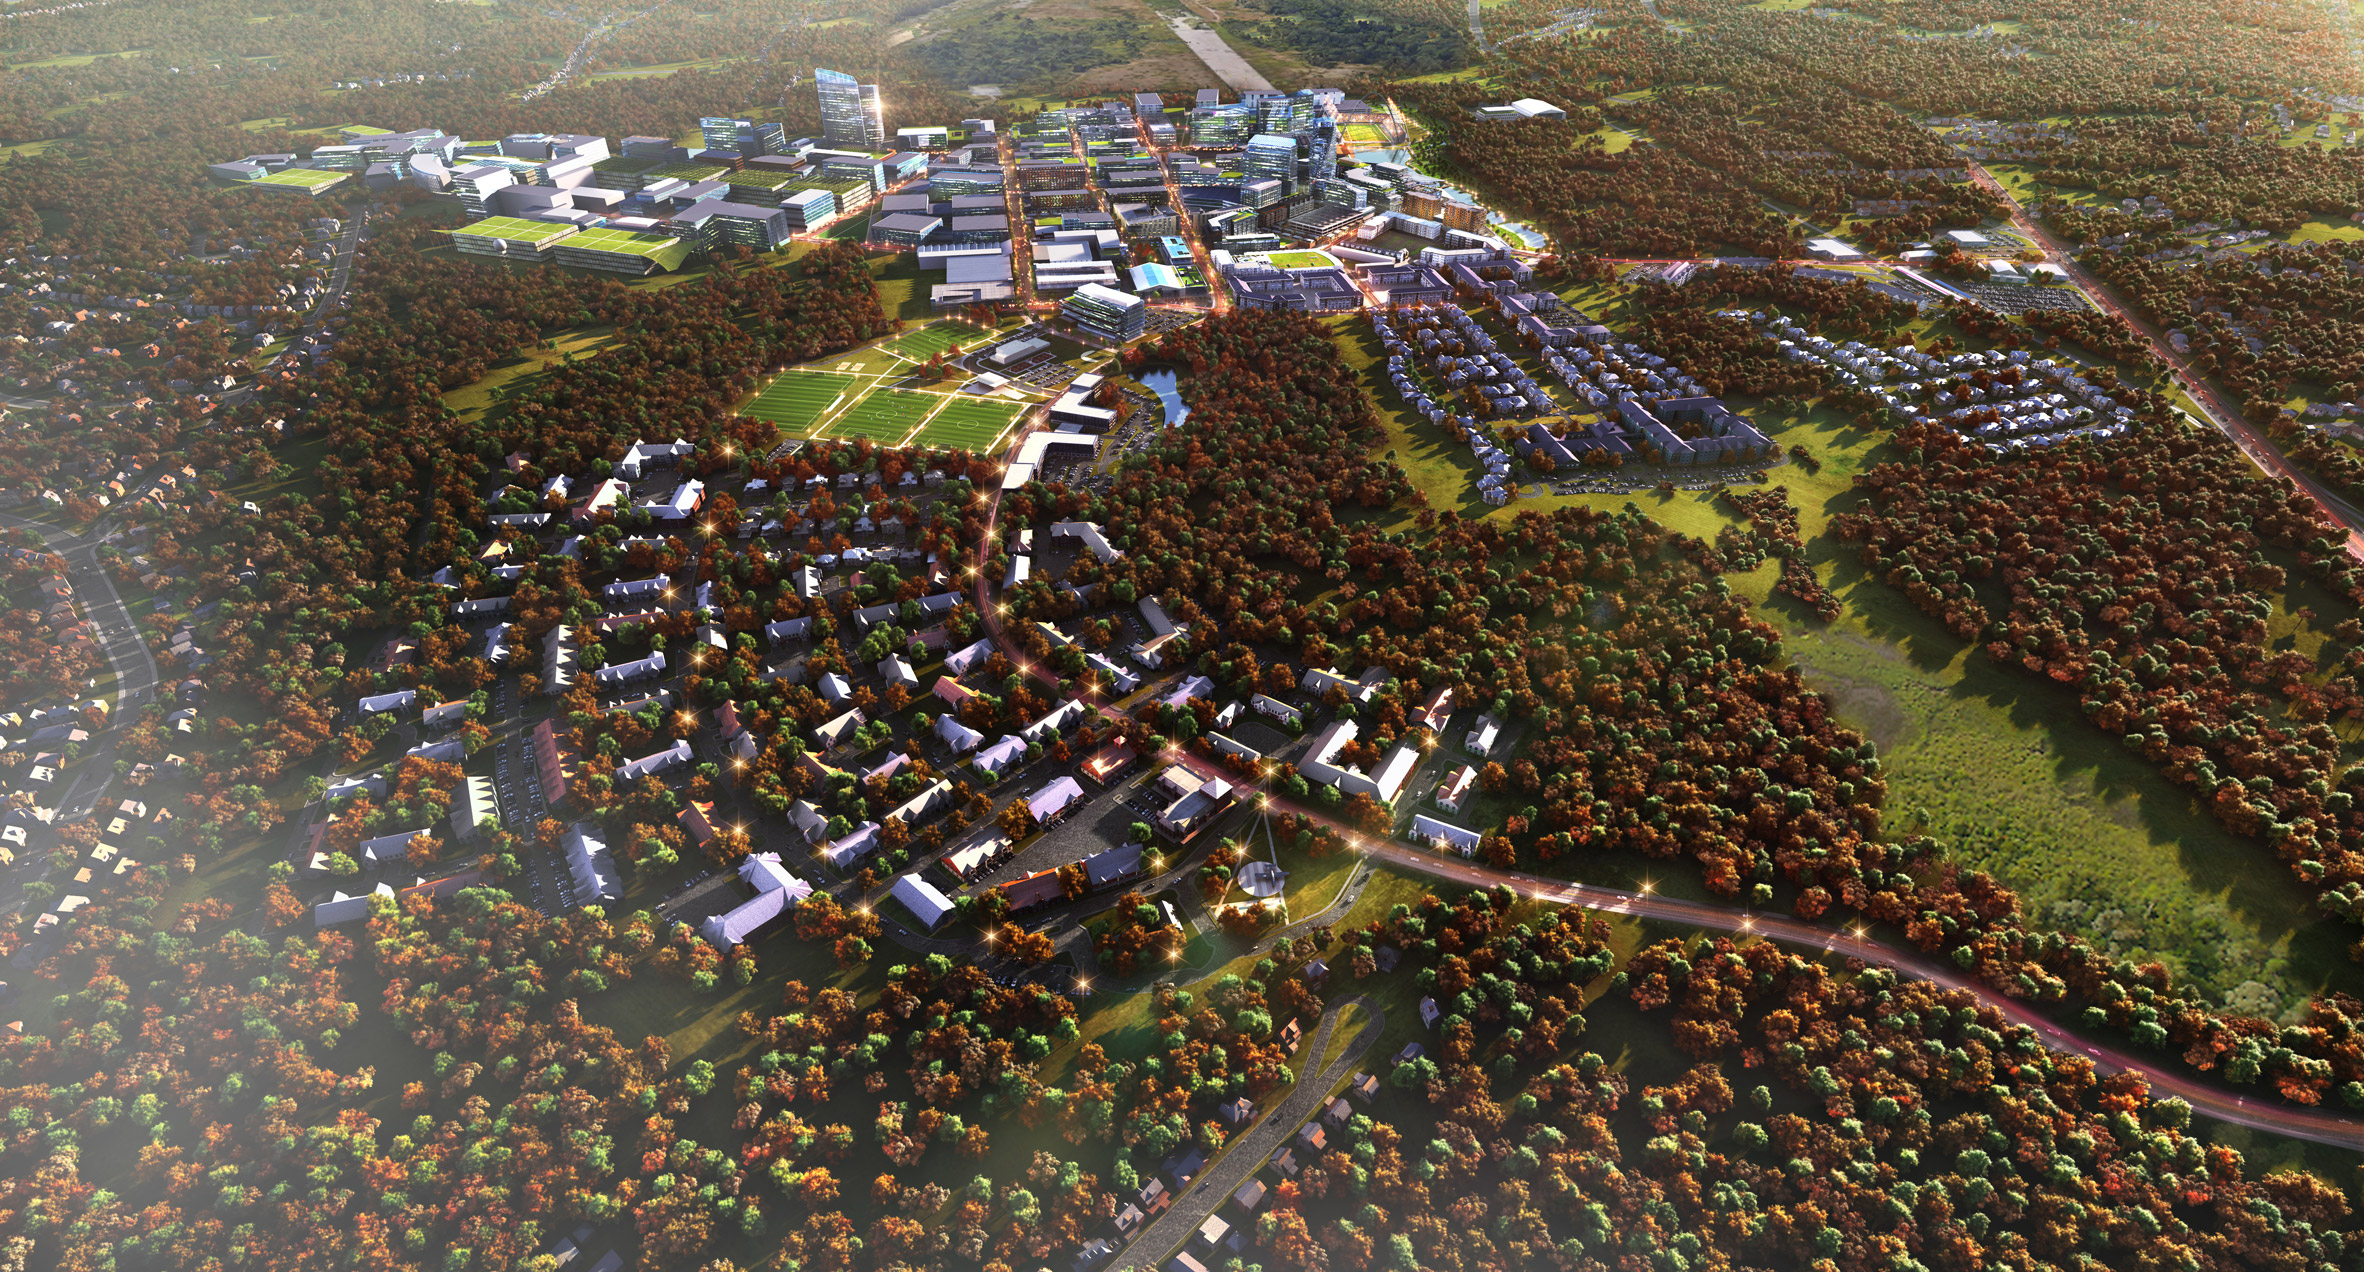 Smart city planned for former US Navy airfield near Boston